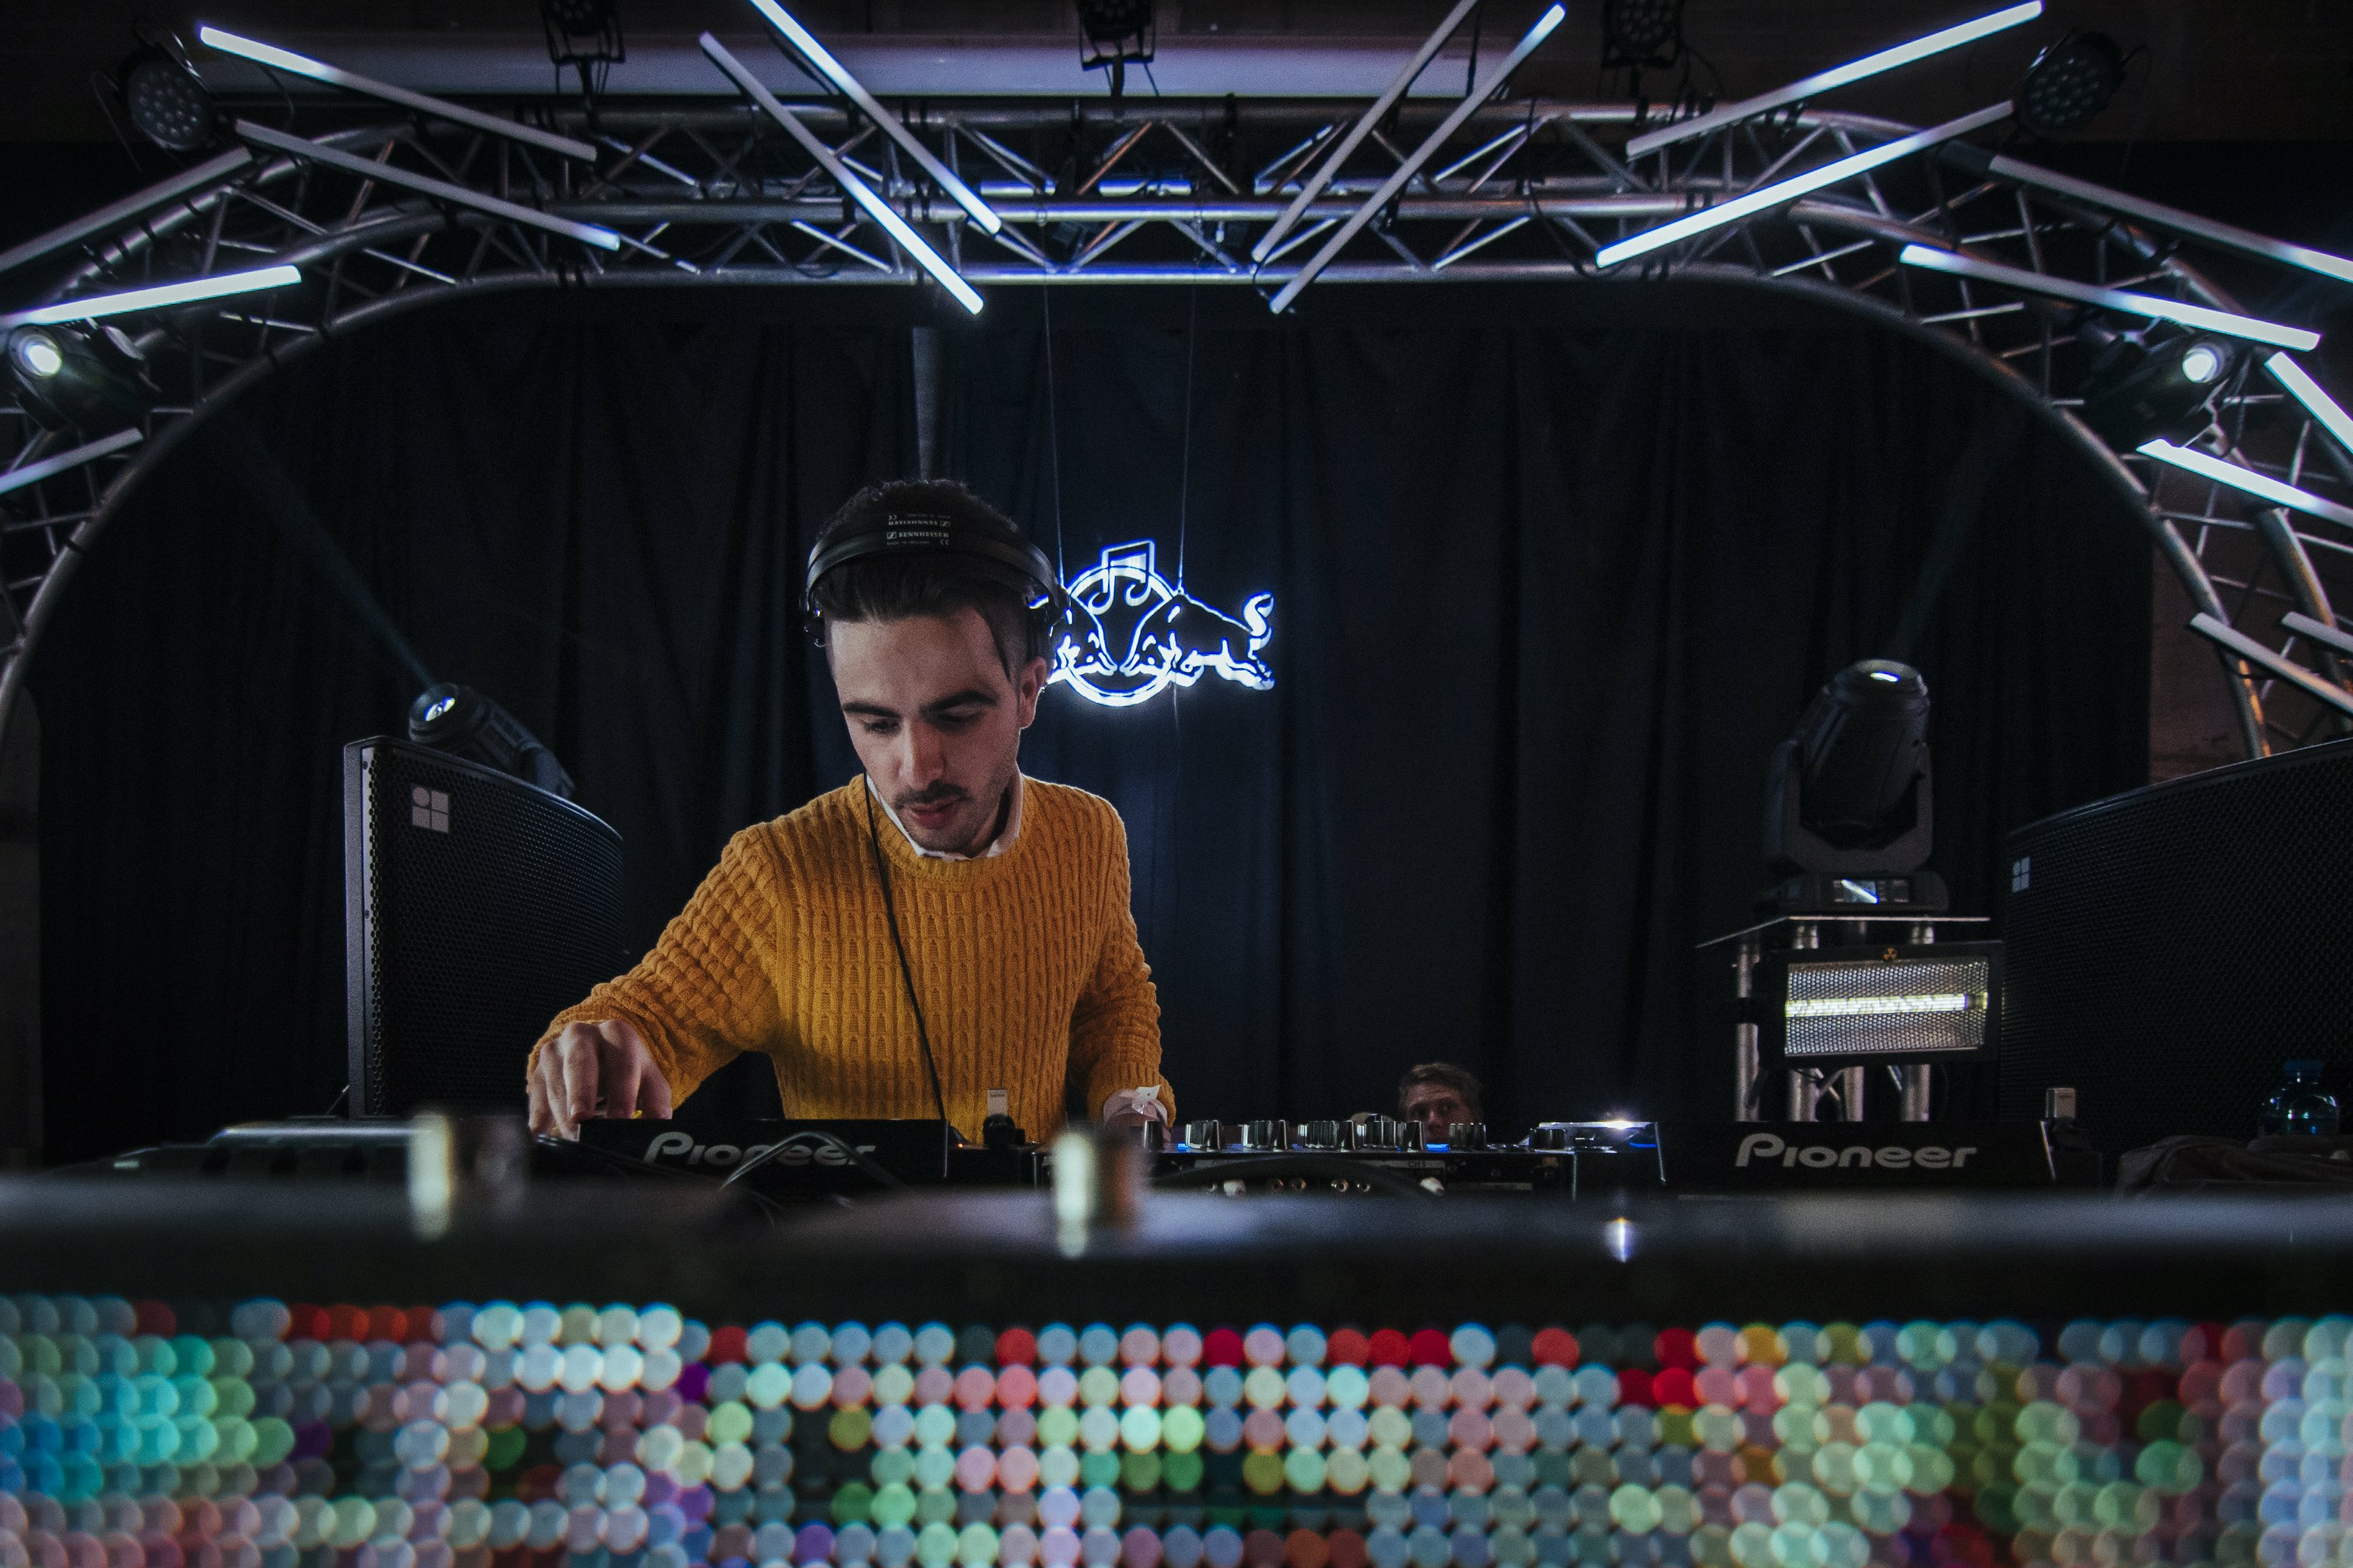 Red Bull Music Academy Presents CTEMF Auditorium Stage Jullian Gomes performs at 1Fox during the Red Bull Music Academy Weekender in 2016